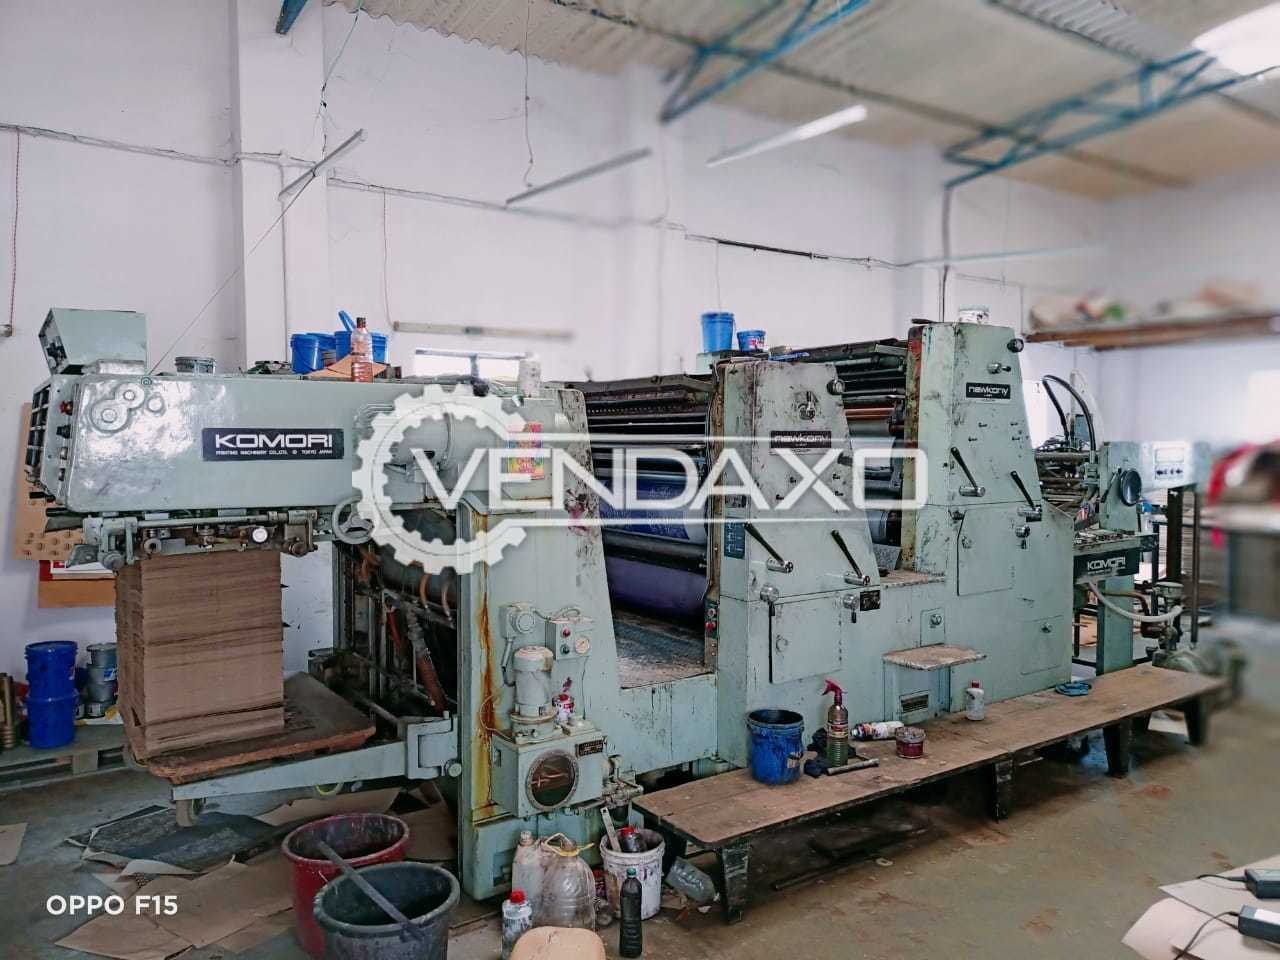 Komori NewKony Offset Printing Machine - 25 X 38 Inch, 2 Color